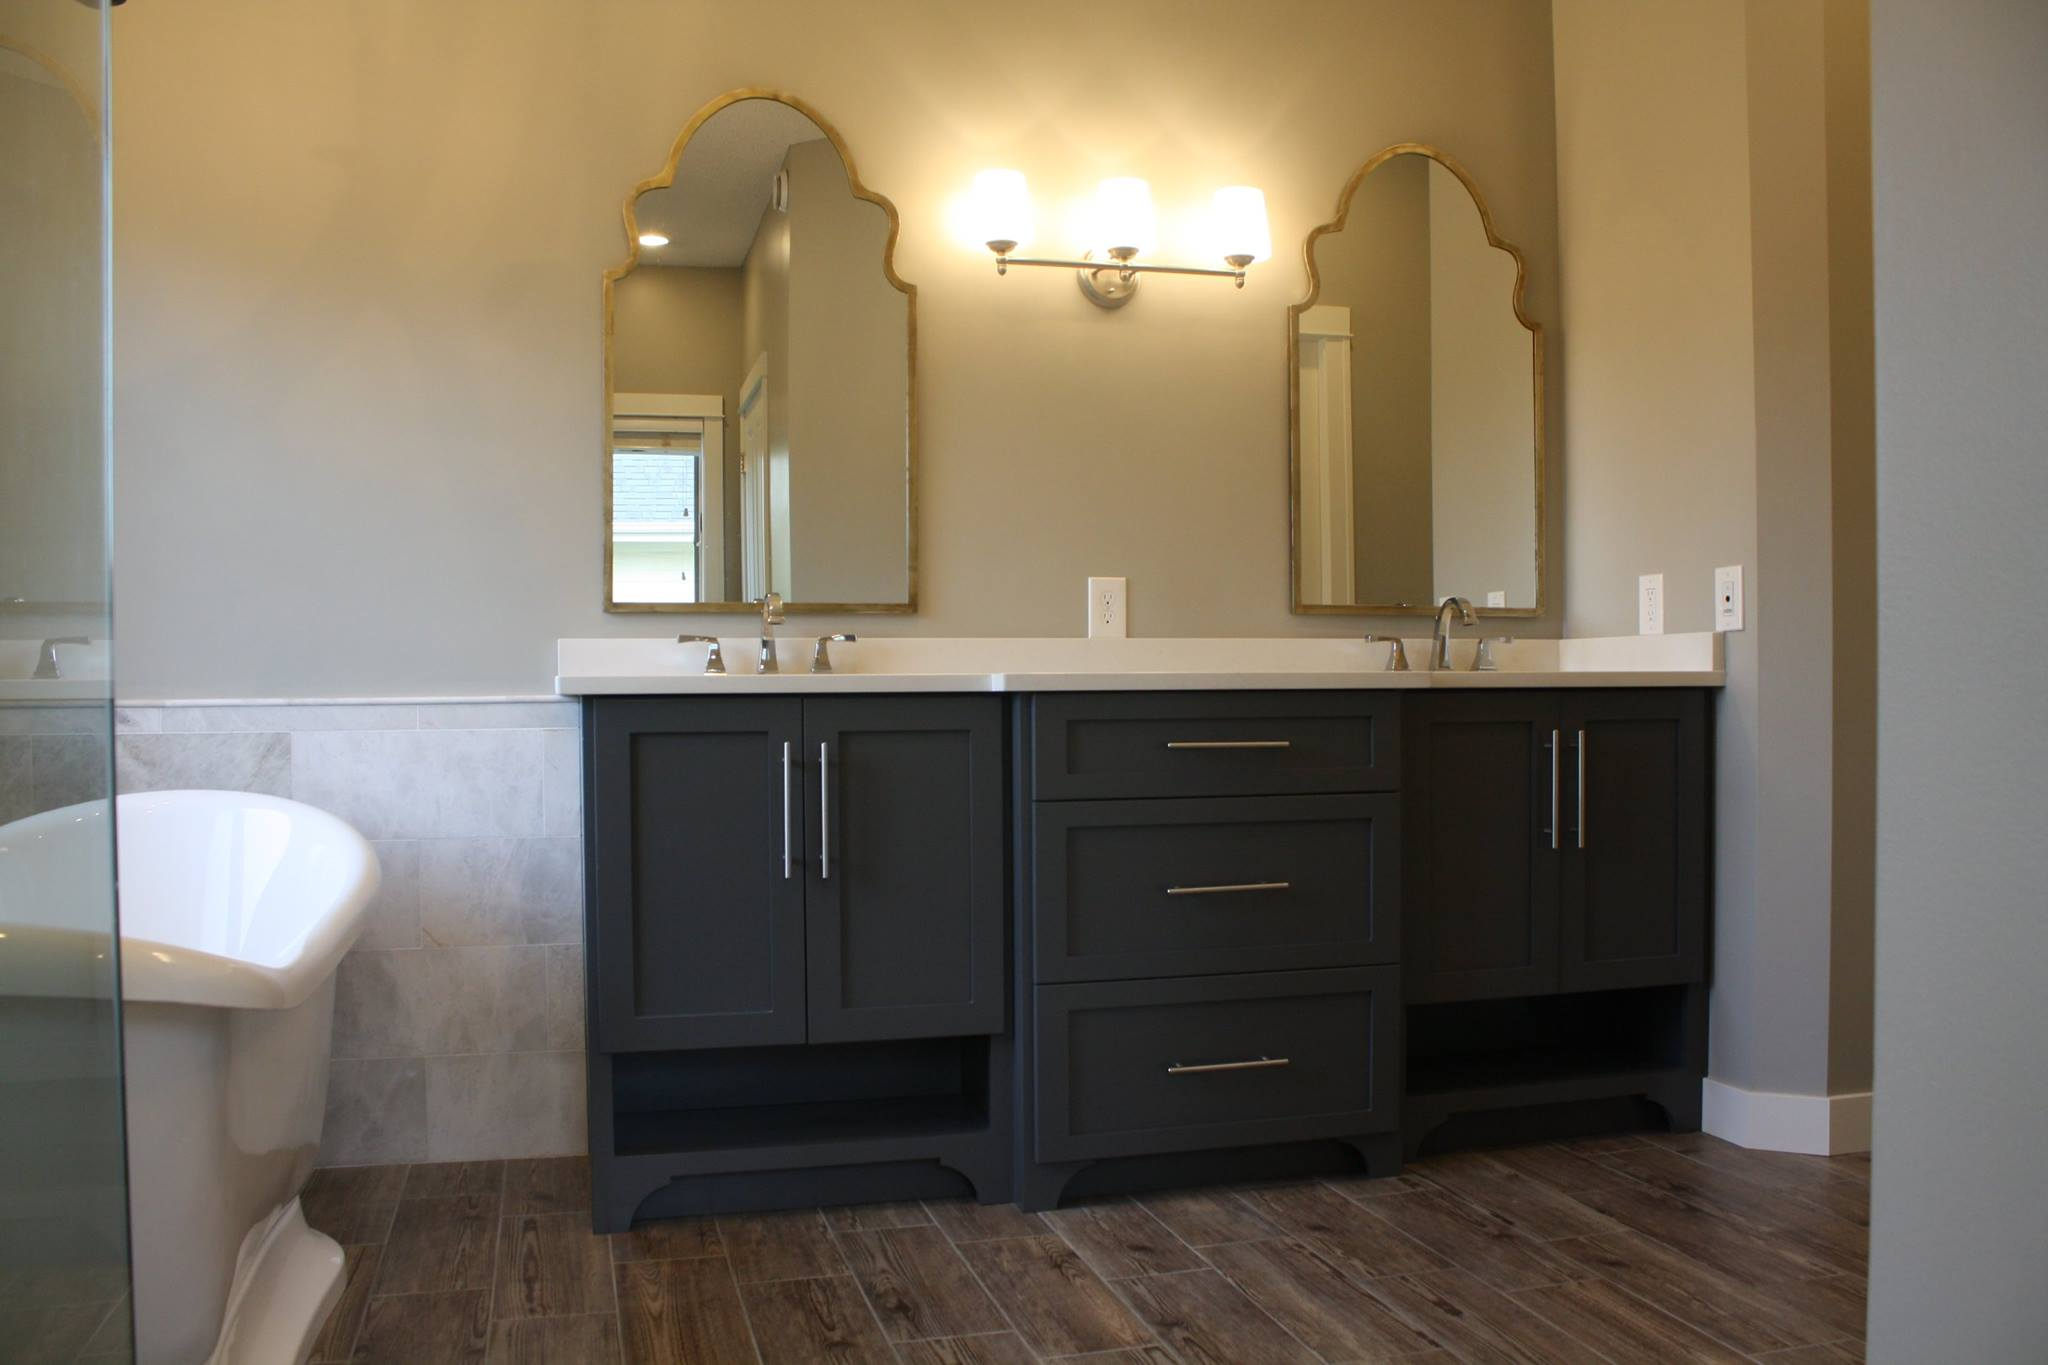 Custom Bathroom Vanities Tampa valley custom cabinets | custom cabinets stillwater